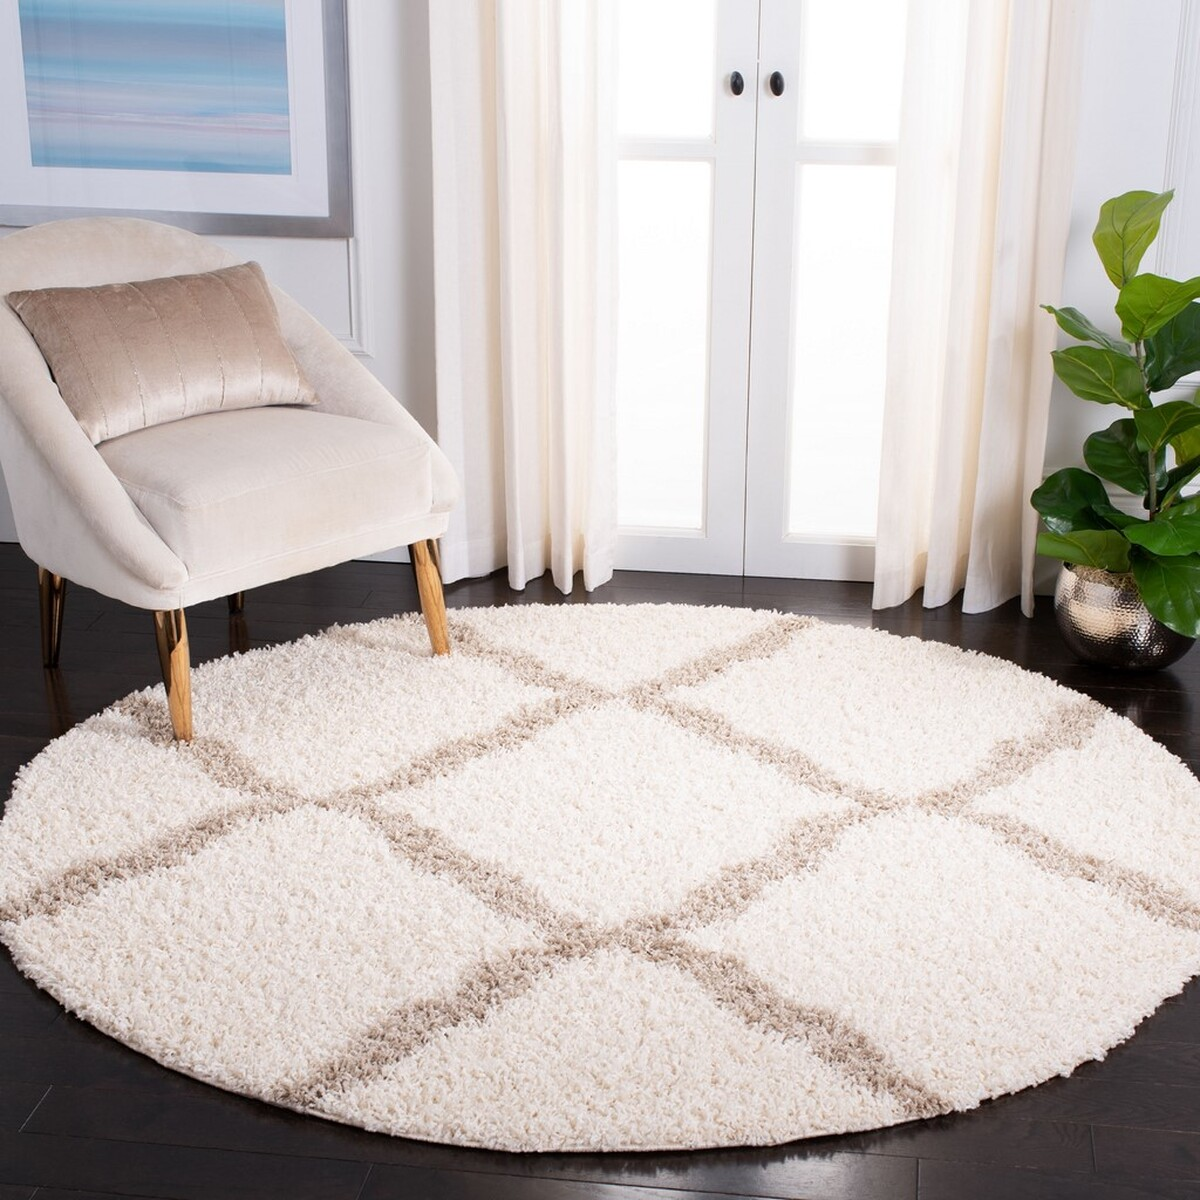 Rug SGD257B - Dallas Shag Area Rugs by Safavieh